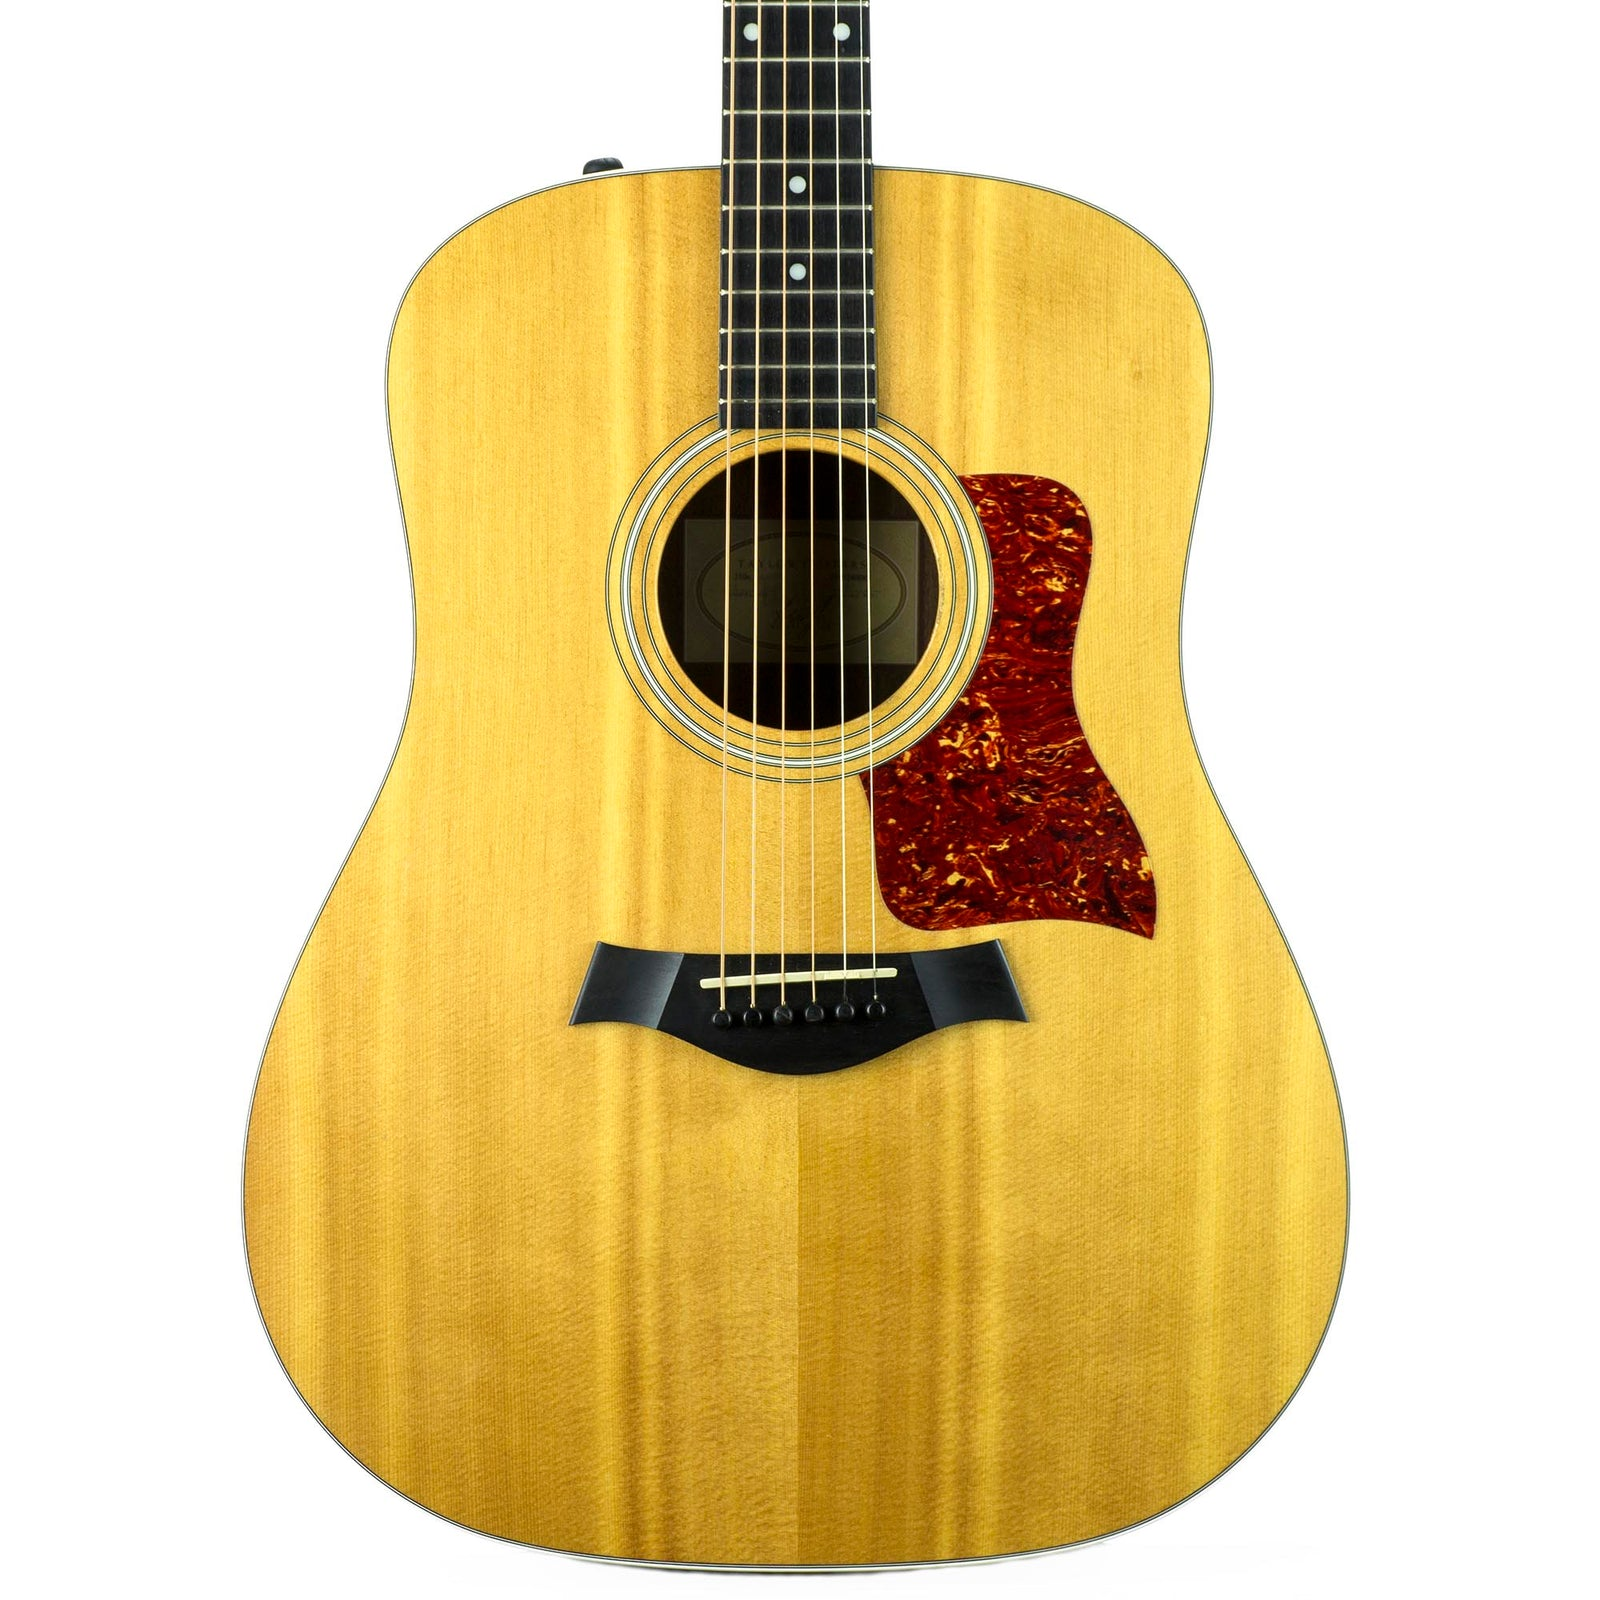 Taylor 210E Dreadnought Acoustic - Natural - Used